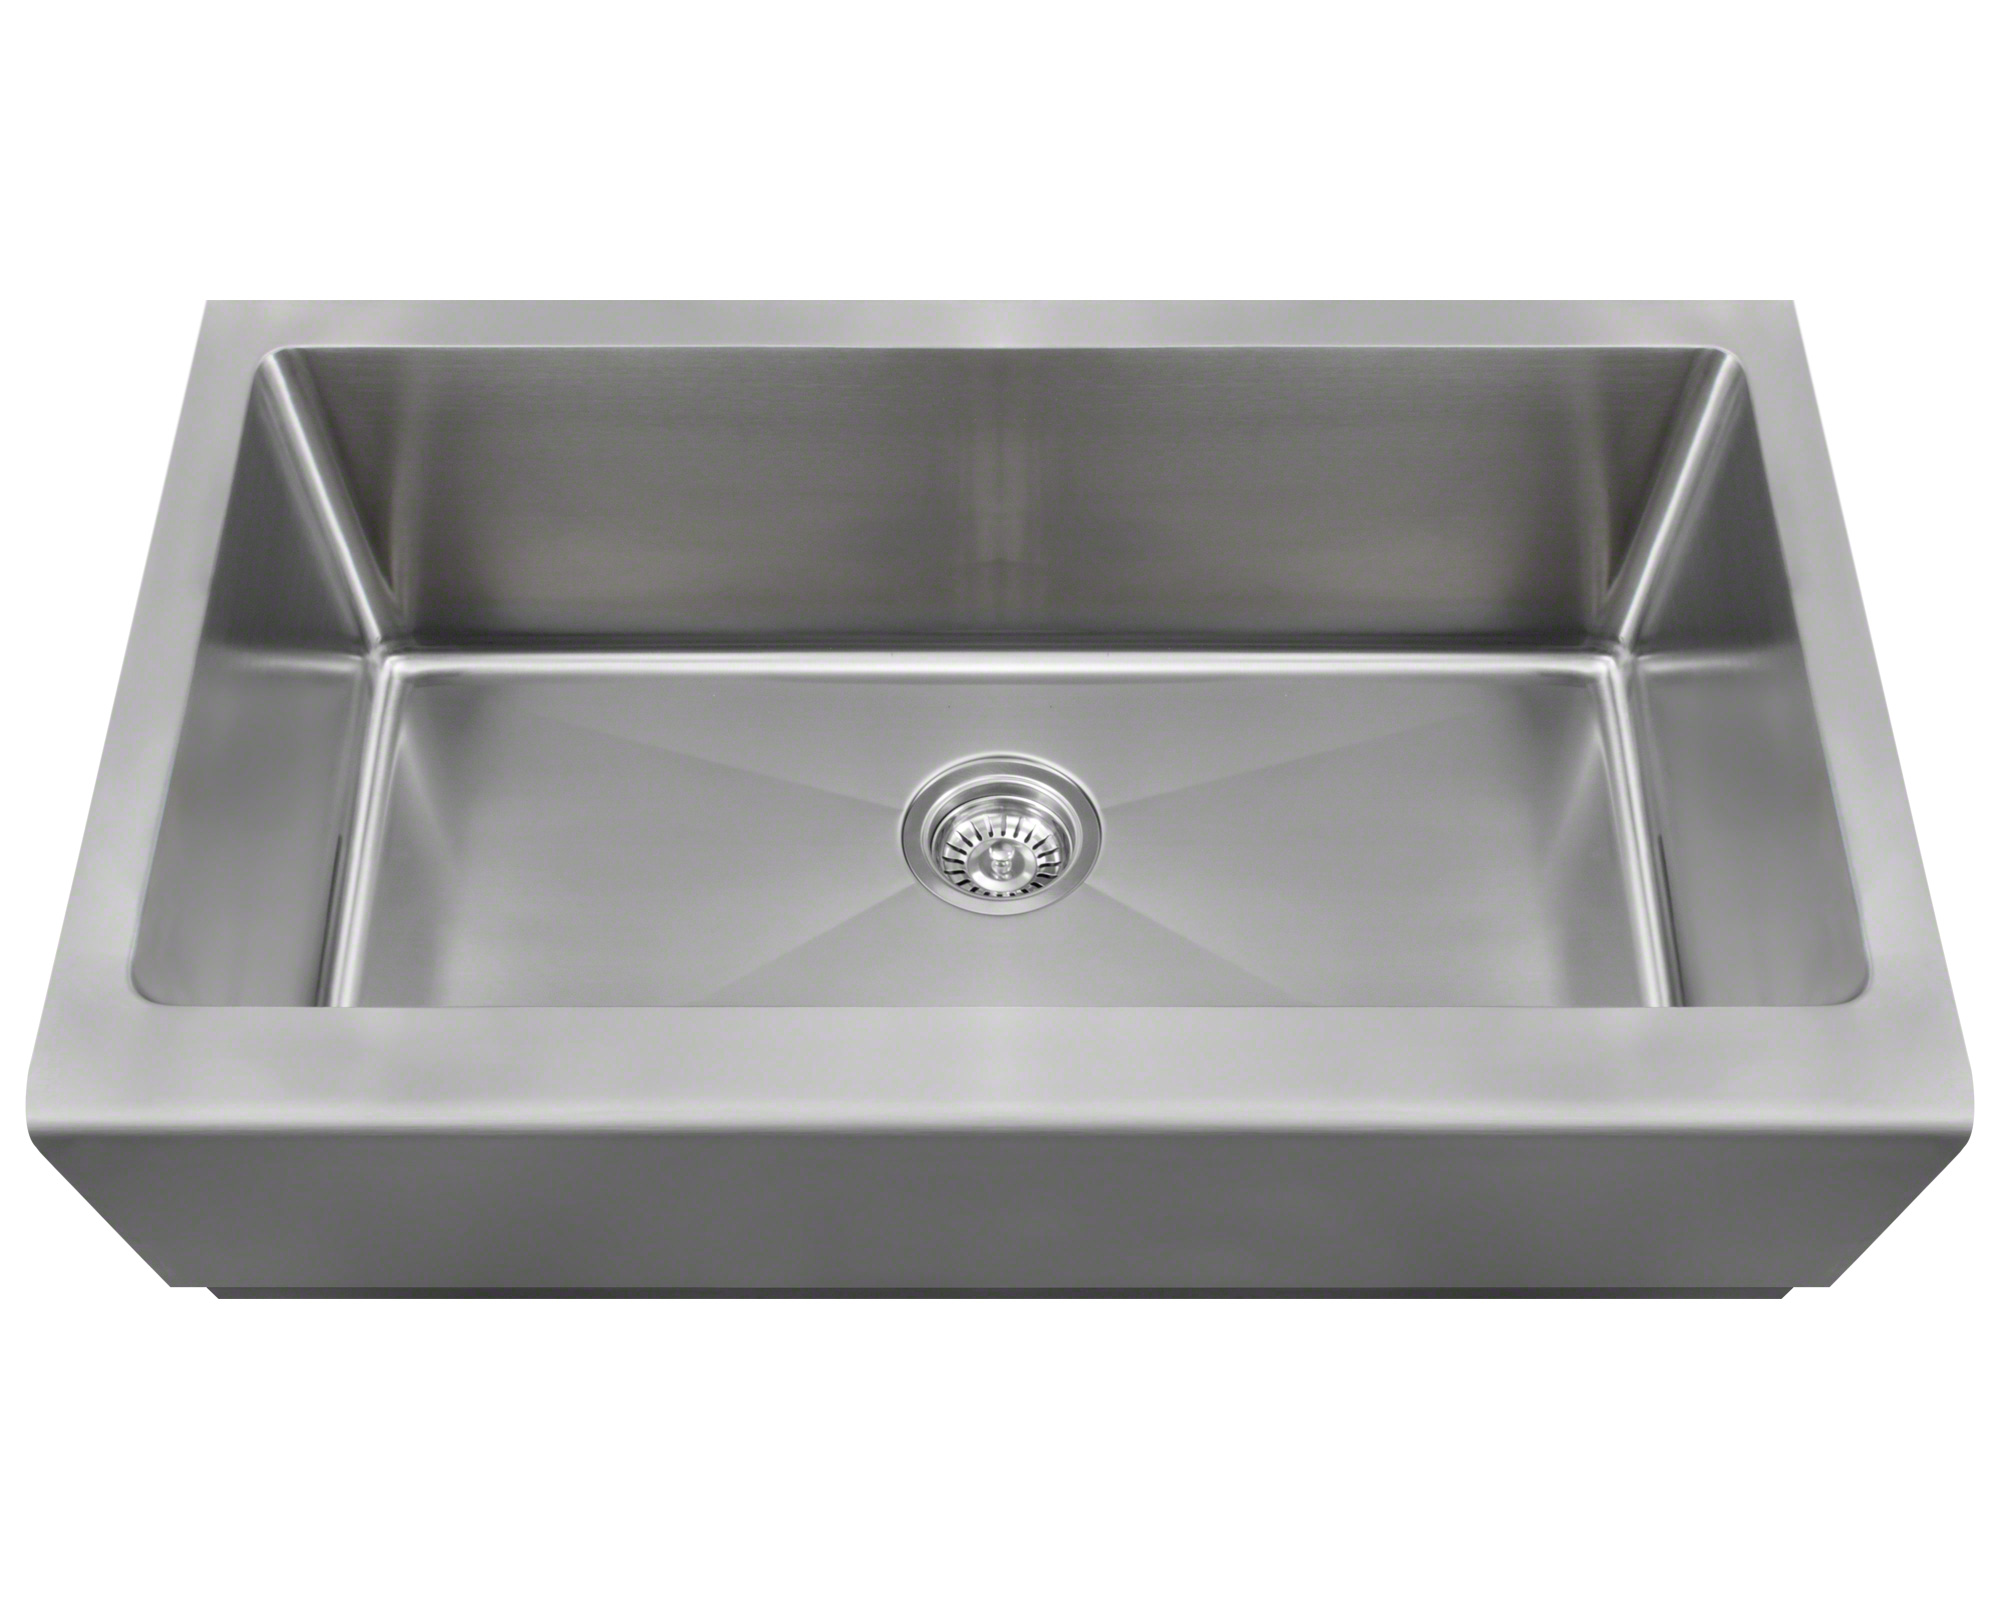 P504 Single Bowl Stainless Steel Apron Sink